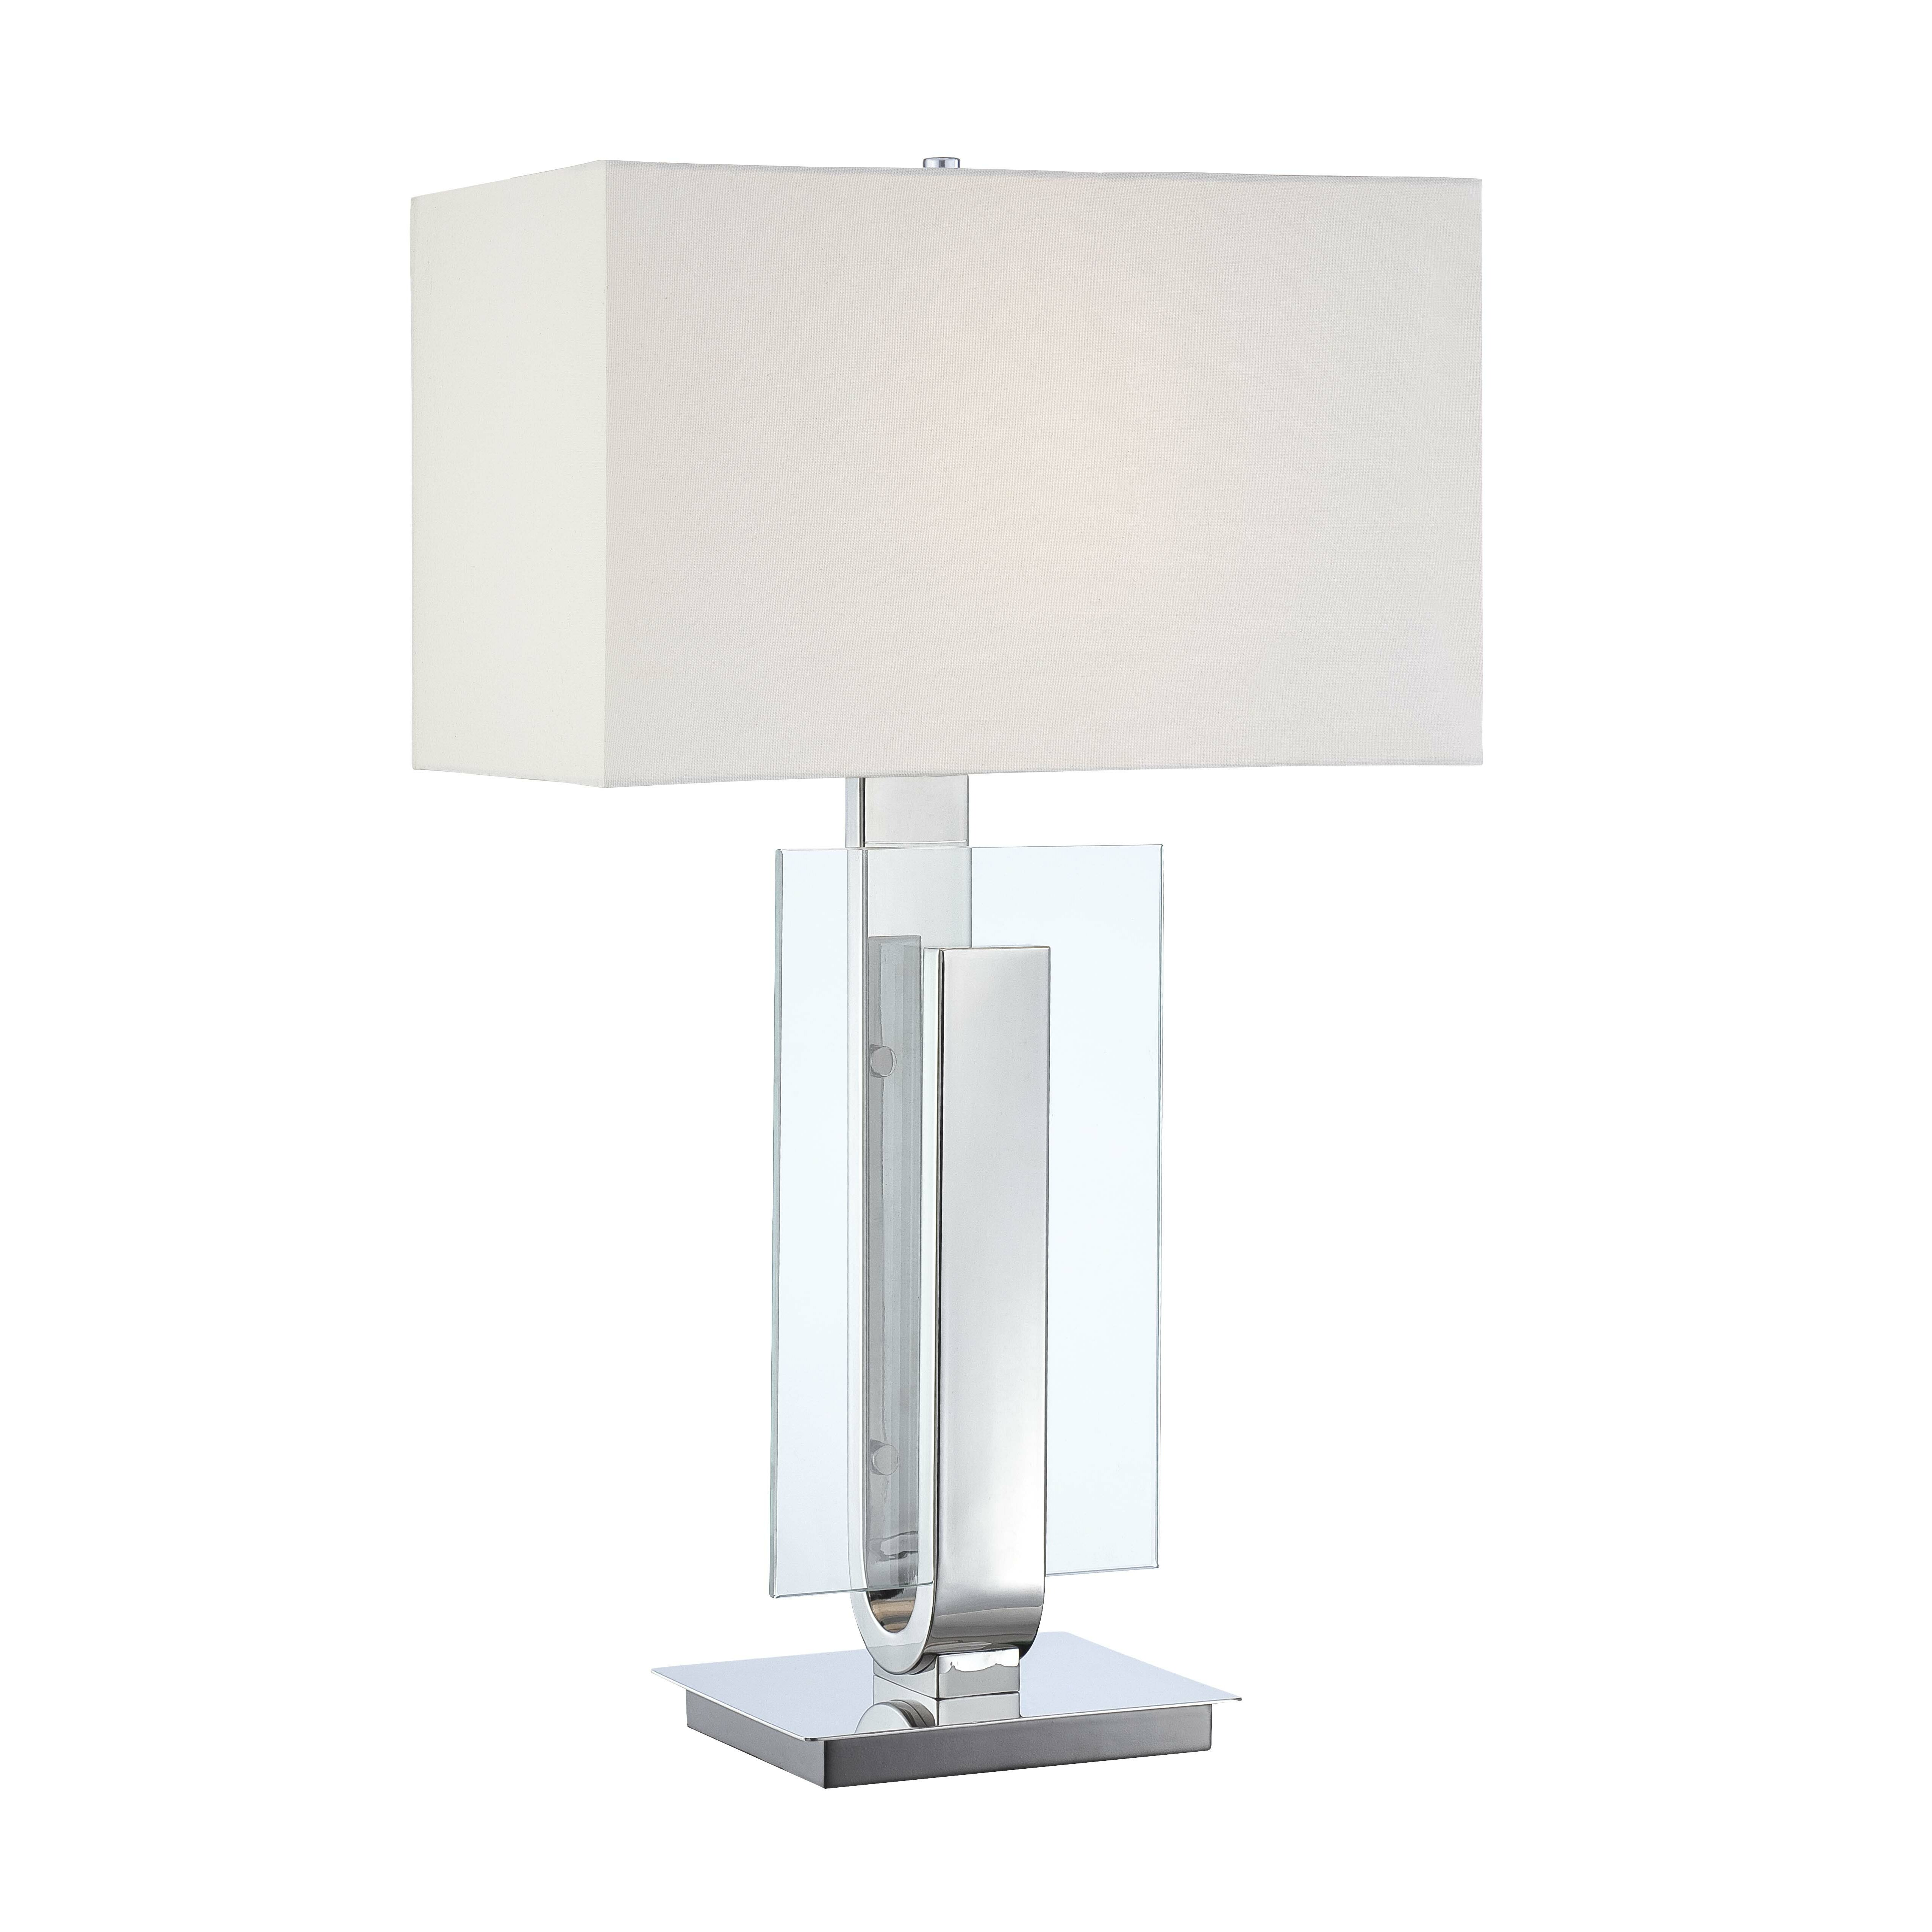 George kovacs portables 31 quot h table lamp with rectangular